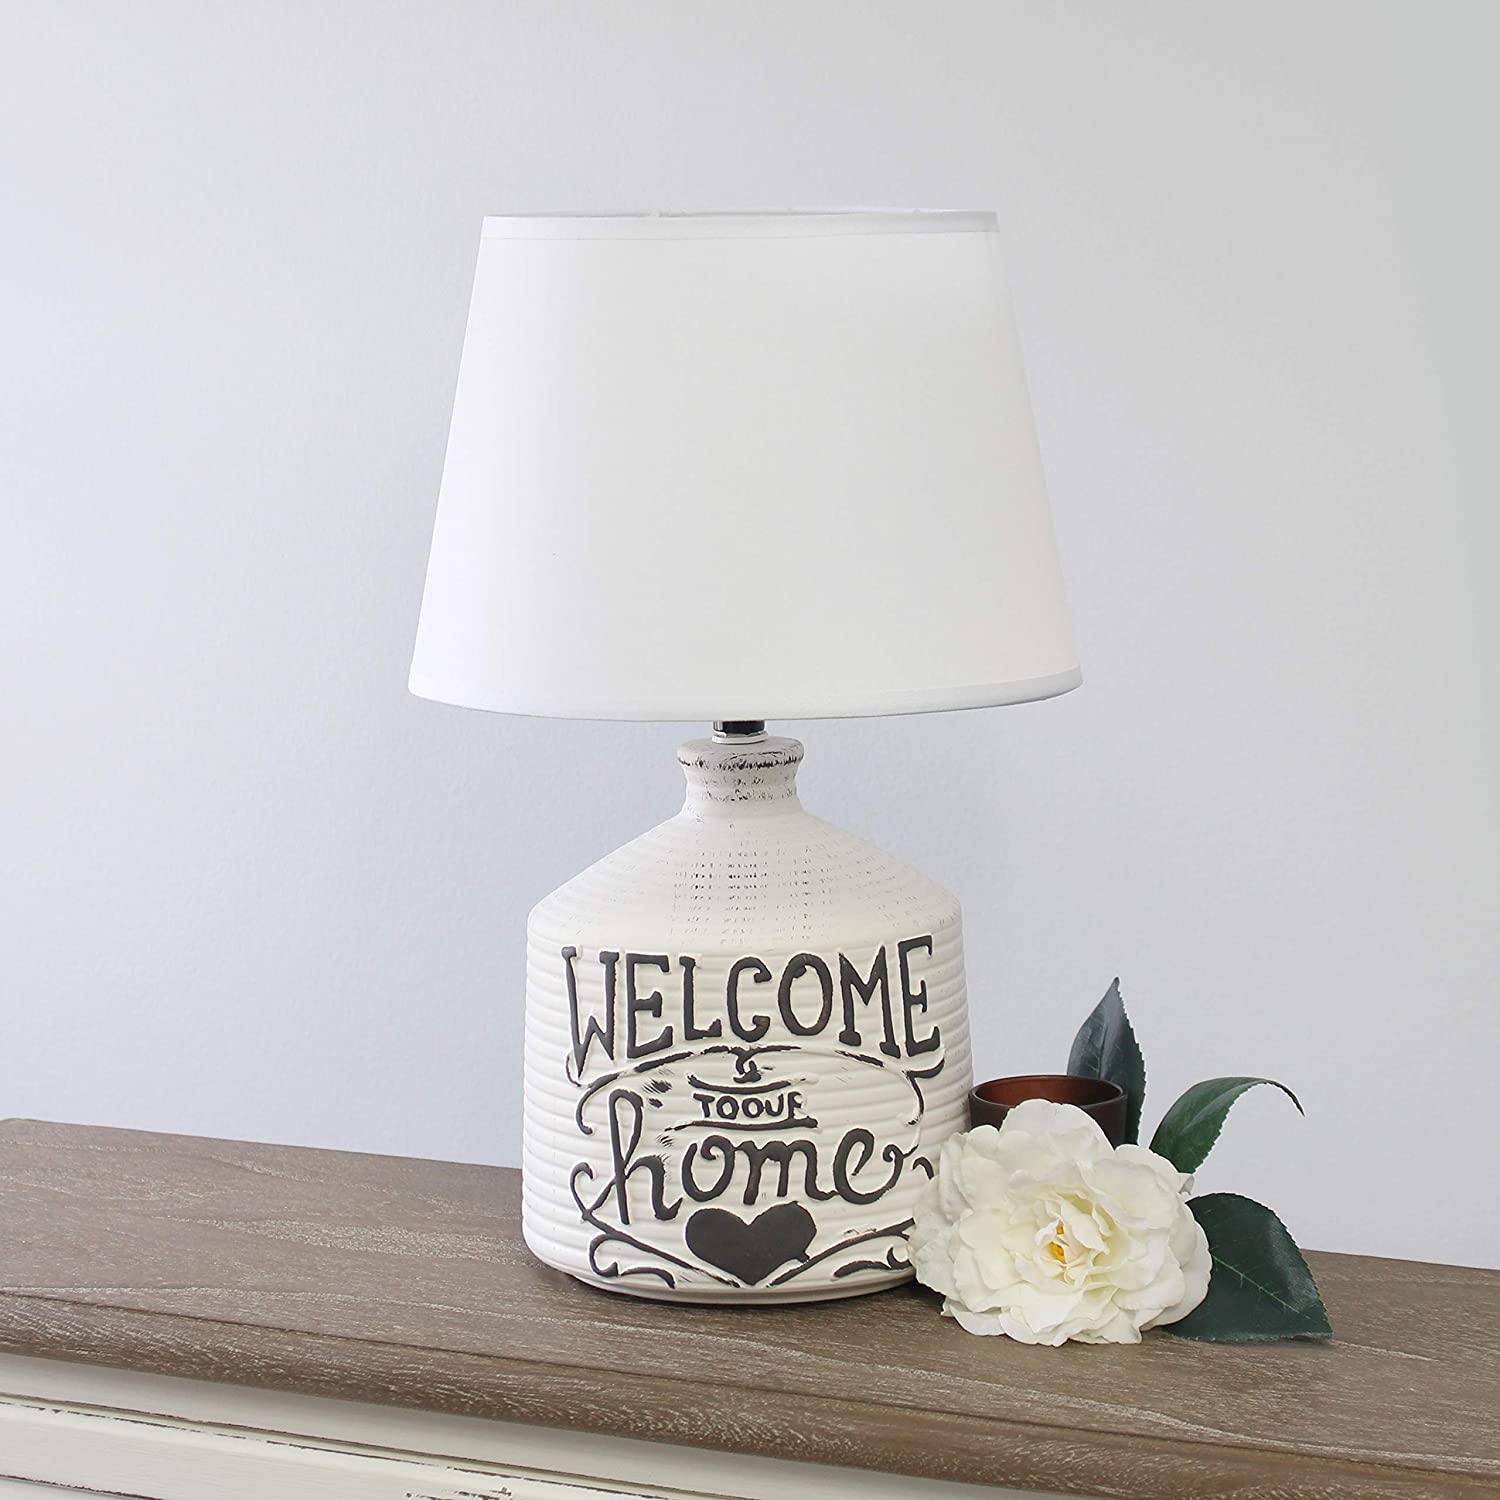 Simple Designs LT1066-HME Welcome Home Ceramic Farmhouse Table Lamp